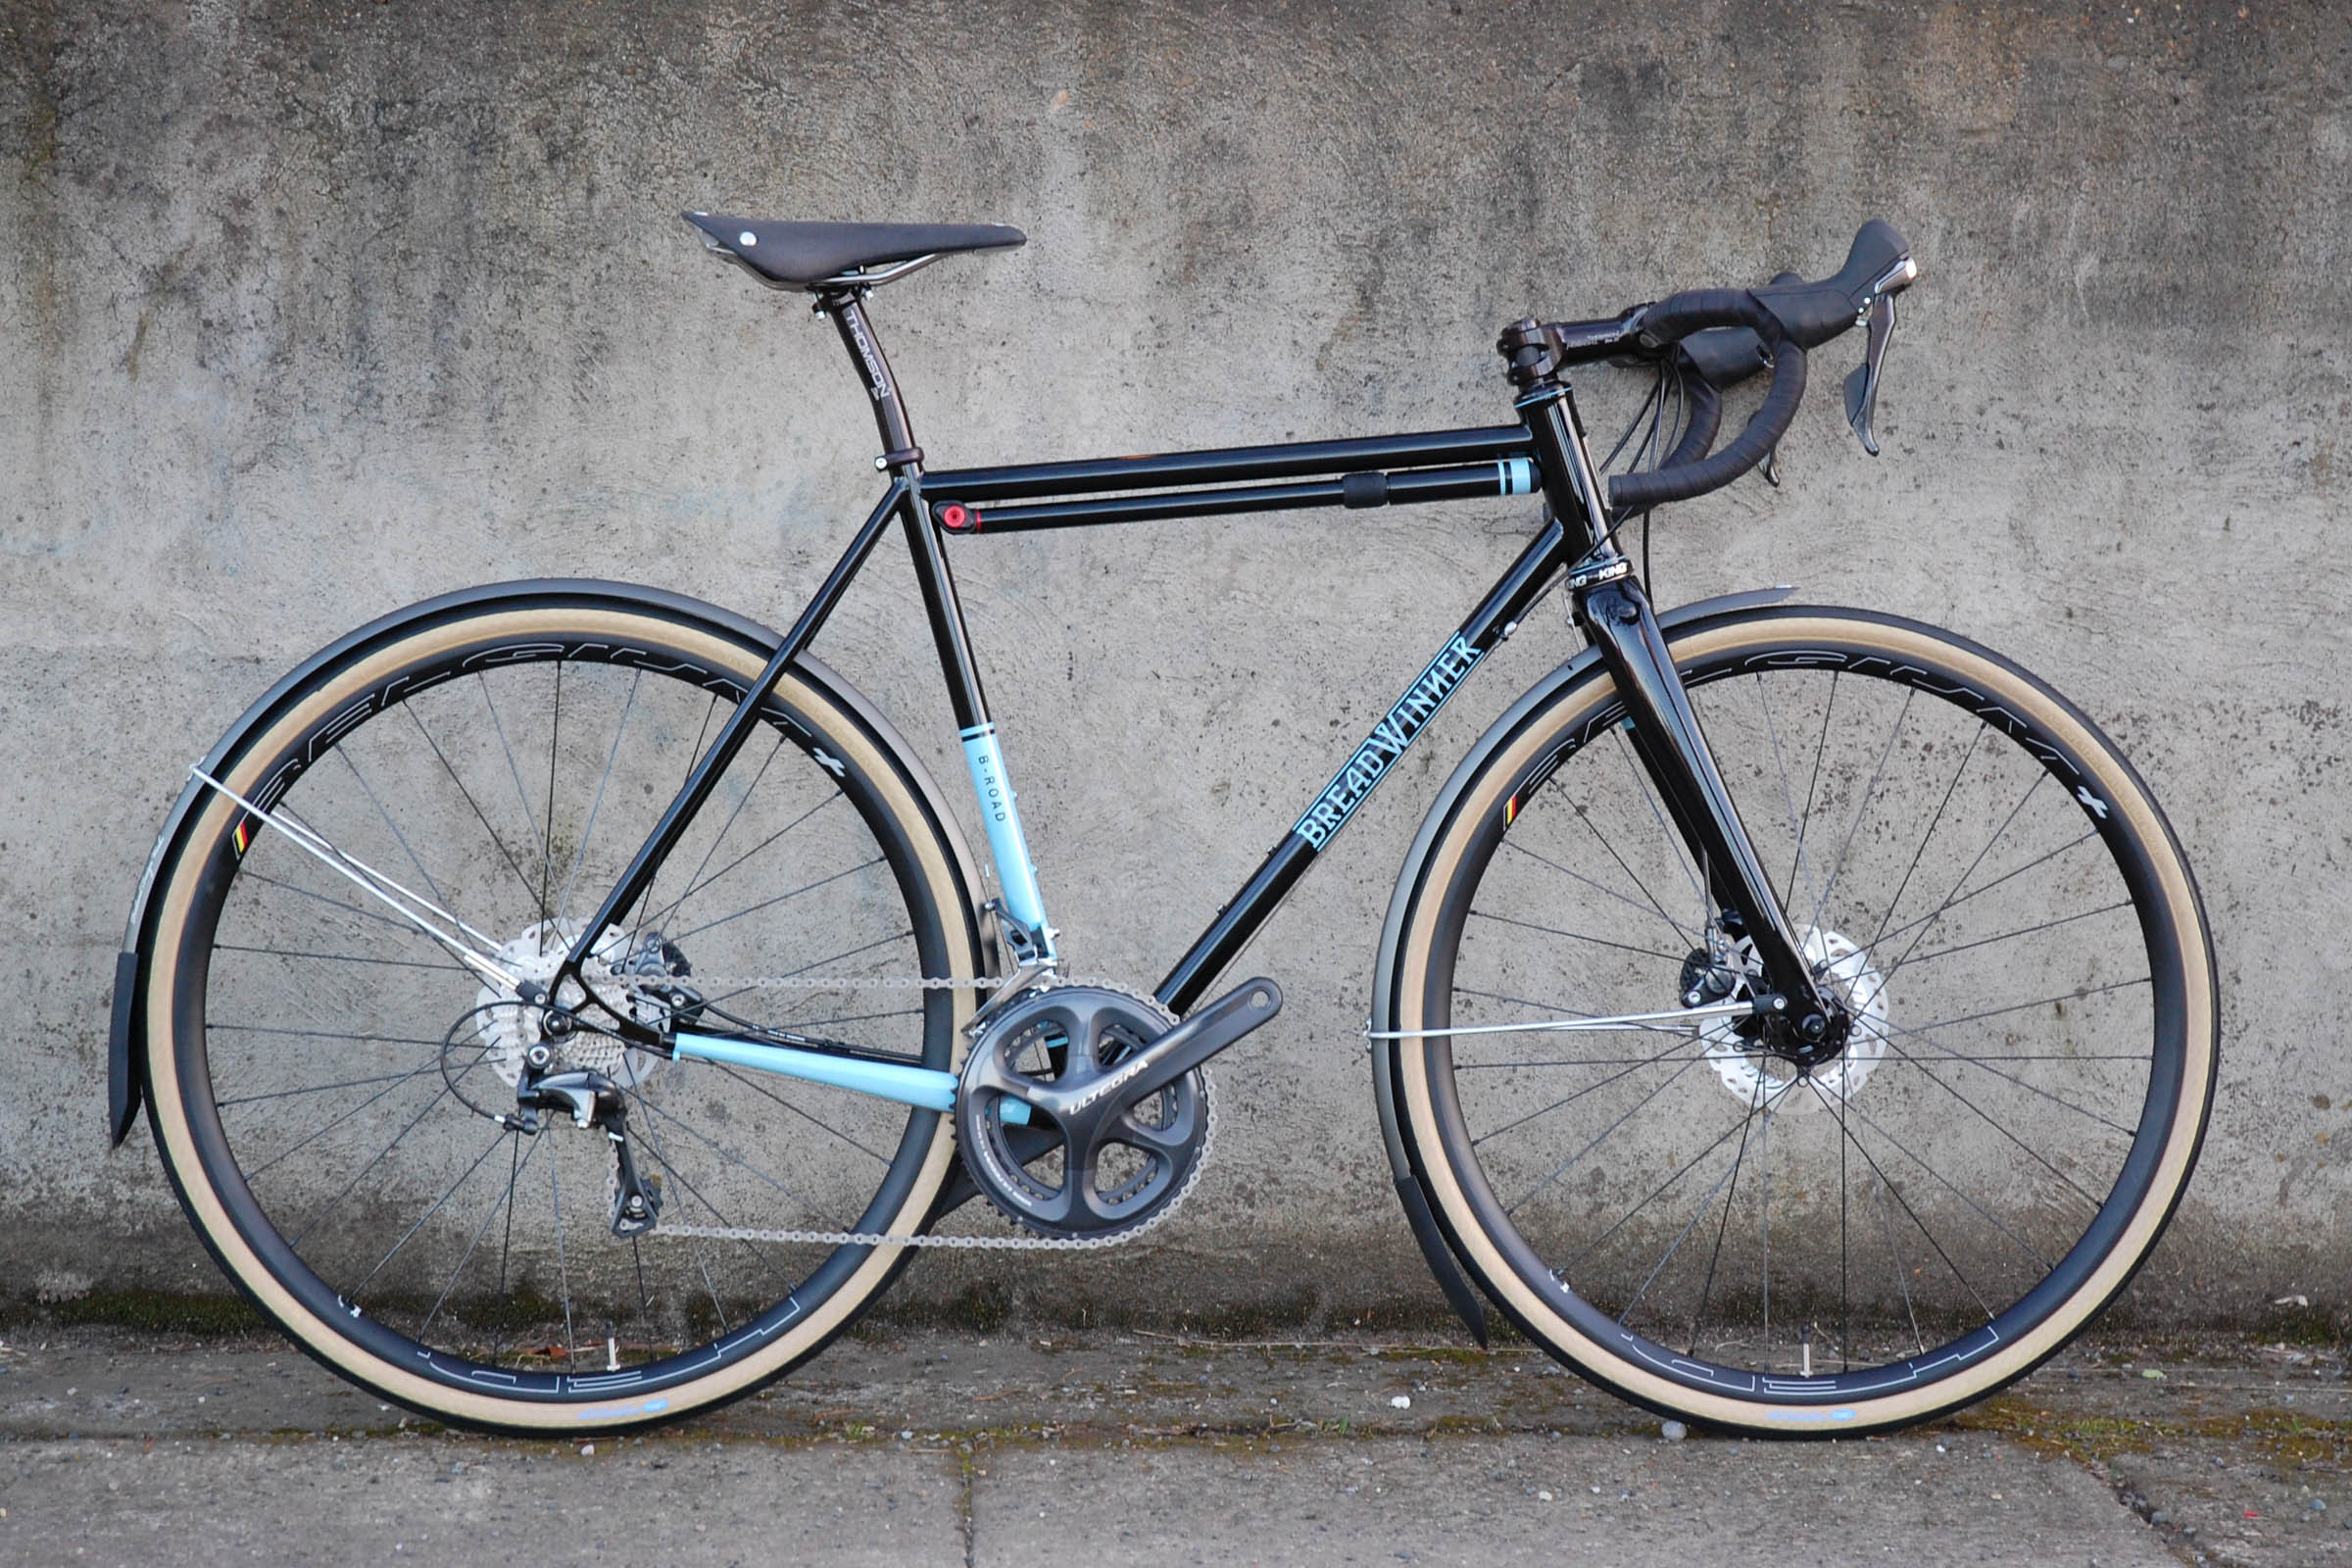 breadwinner_cycles_custom_steel_bikes_portland_oregon_b-road_gravel_road_bike